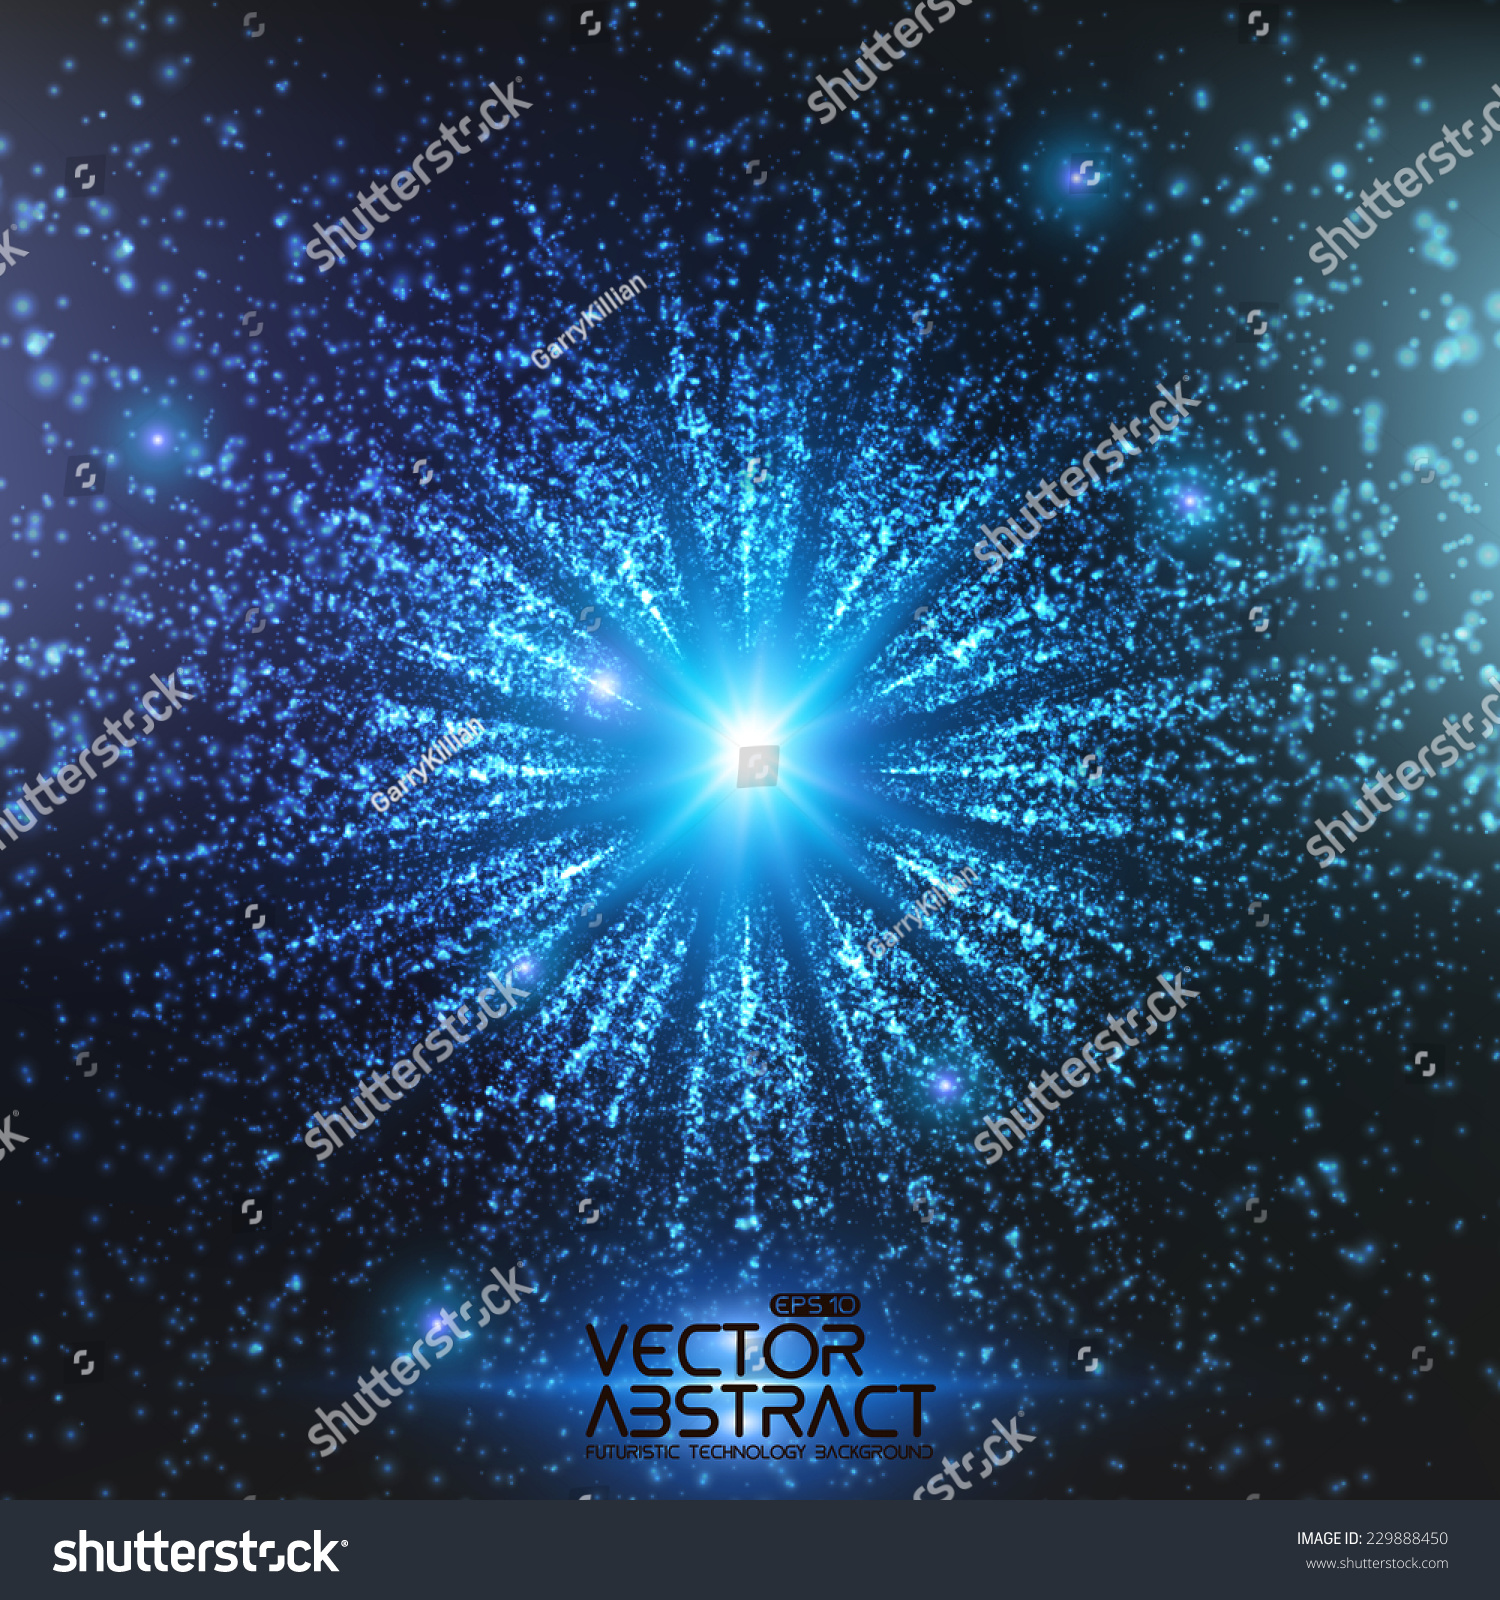 Abstract Vector Space Background. Explosion Of Glowing ...